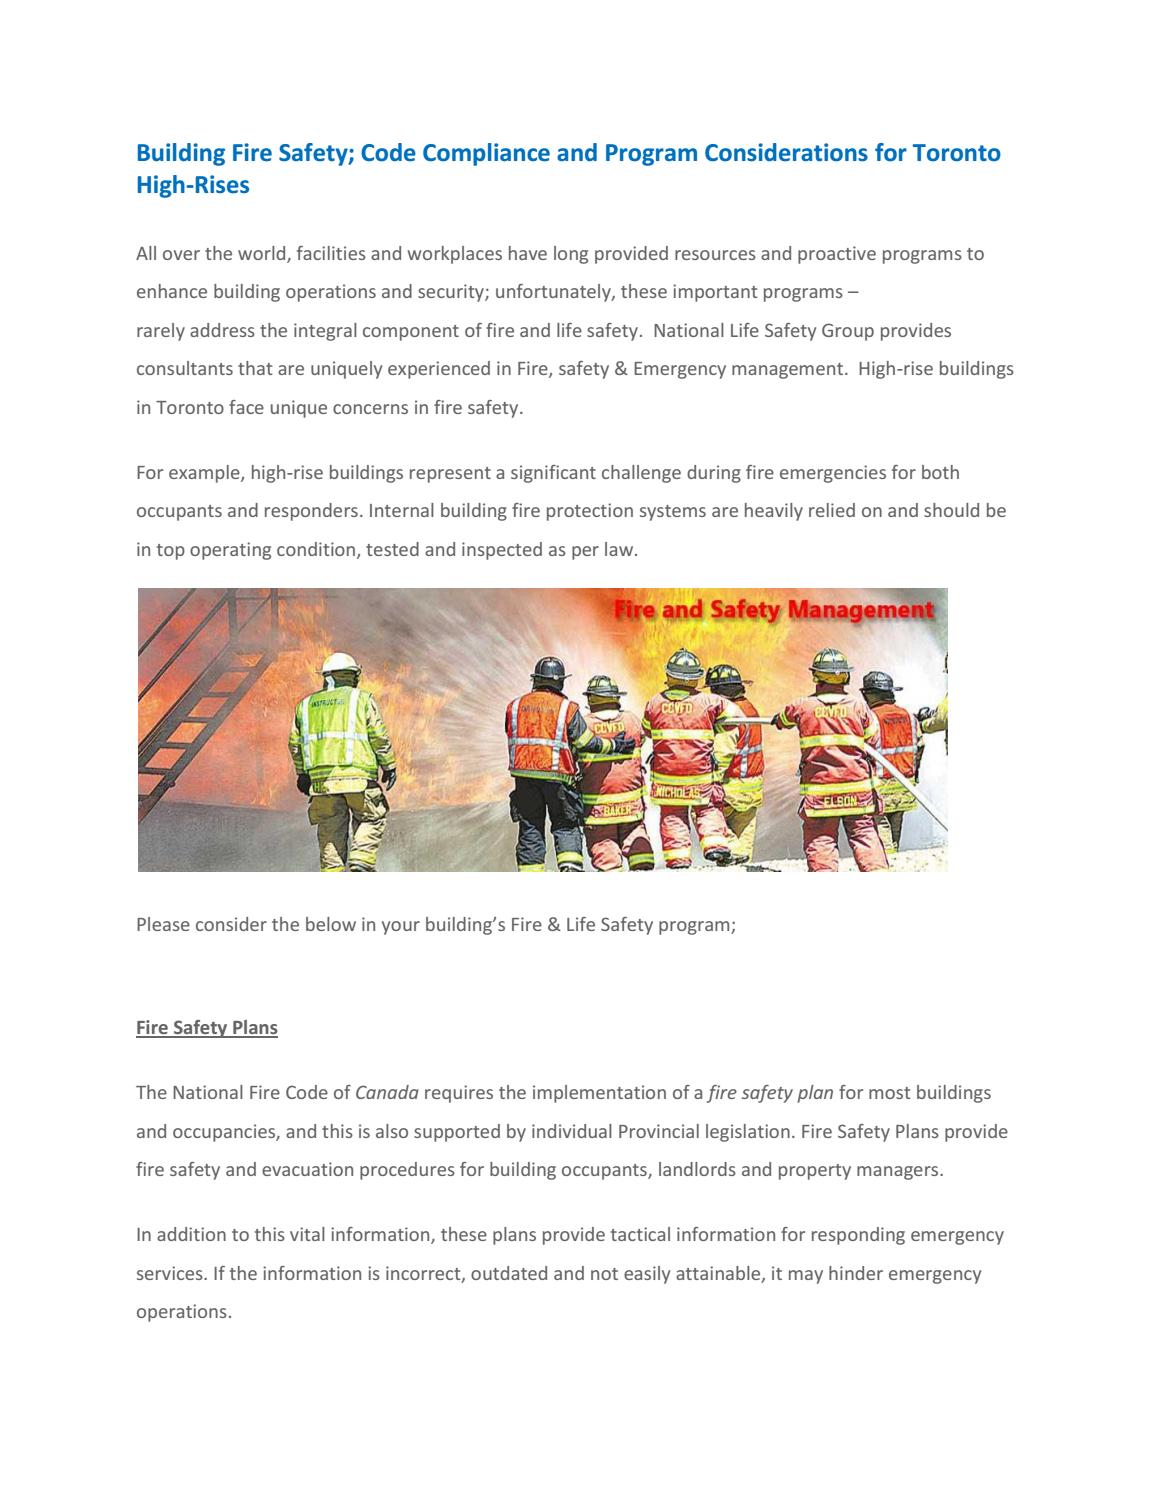 Building Fire Safety Fire Safety Services In Canada By National Life